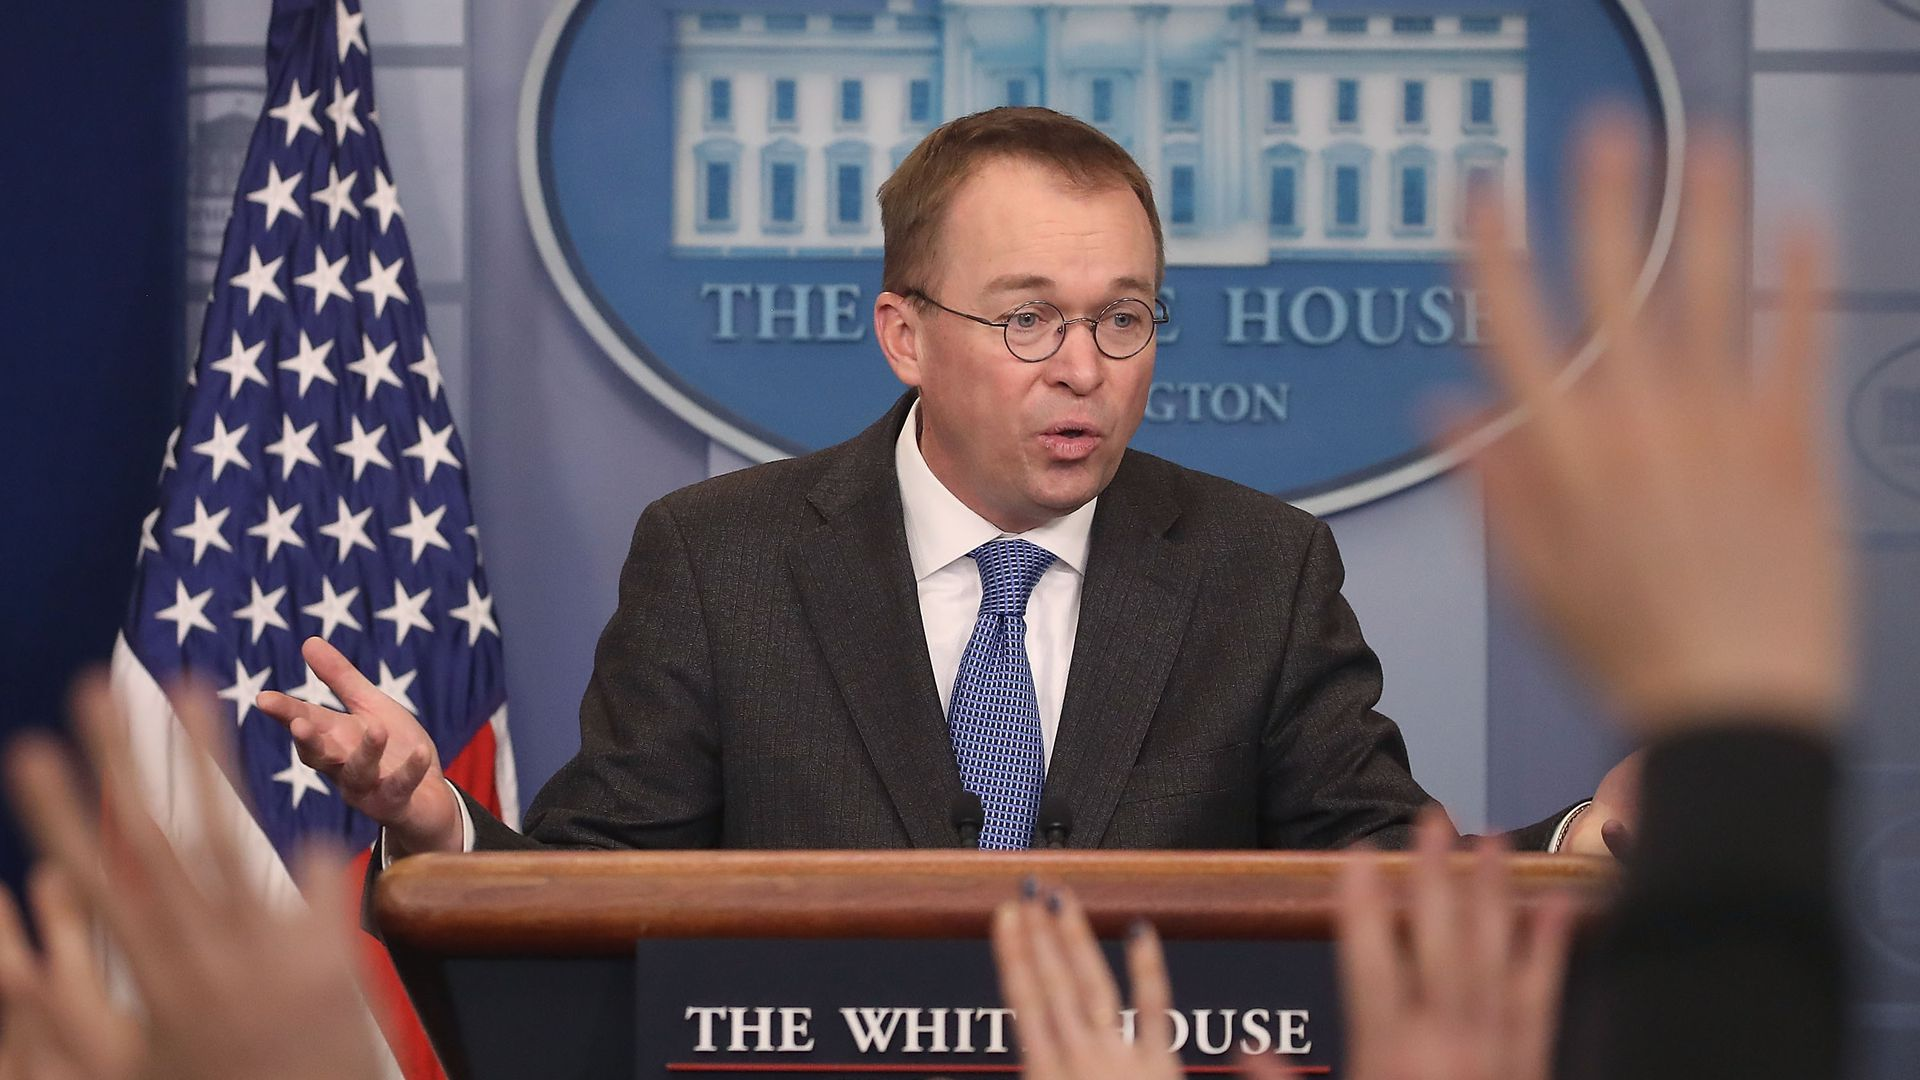 Mick Mulvaney at the White House podium